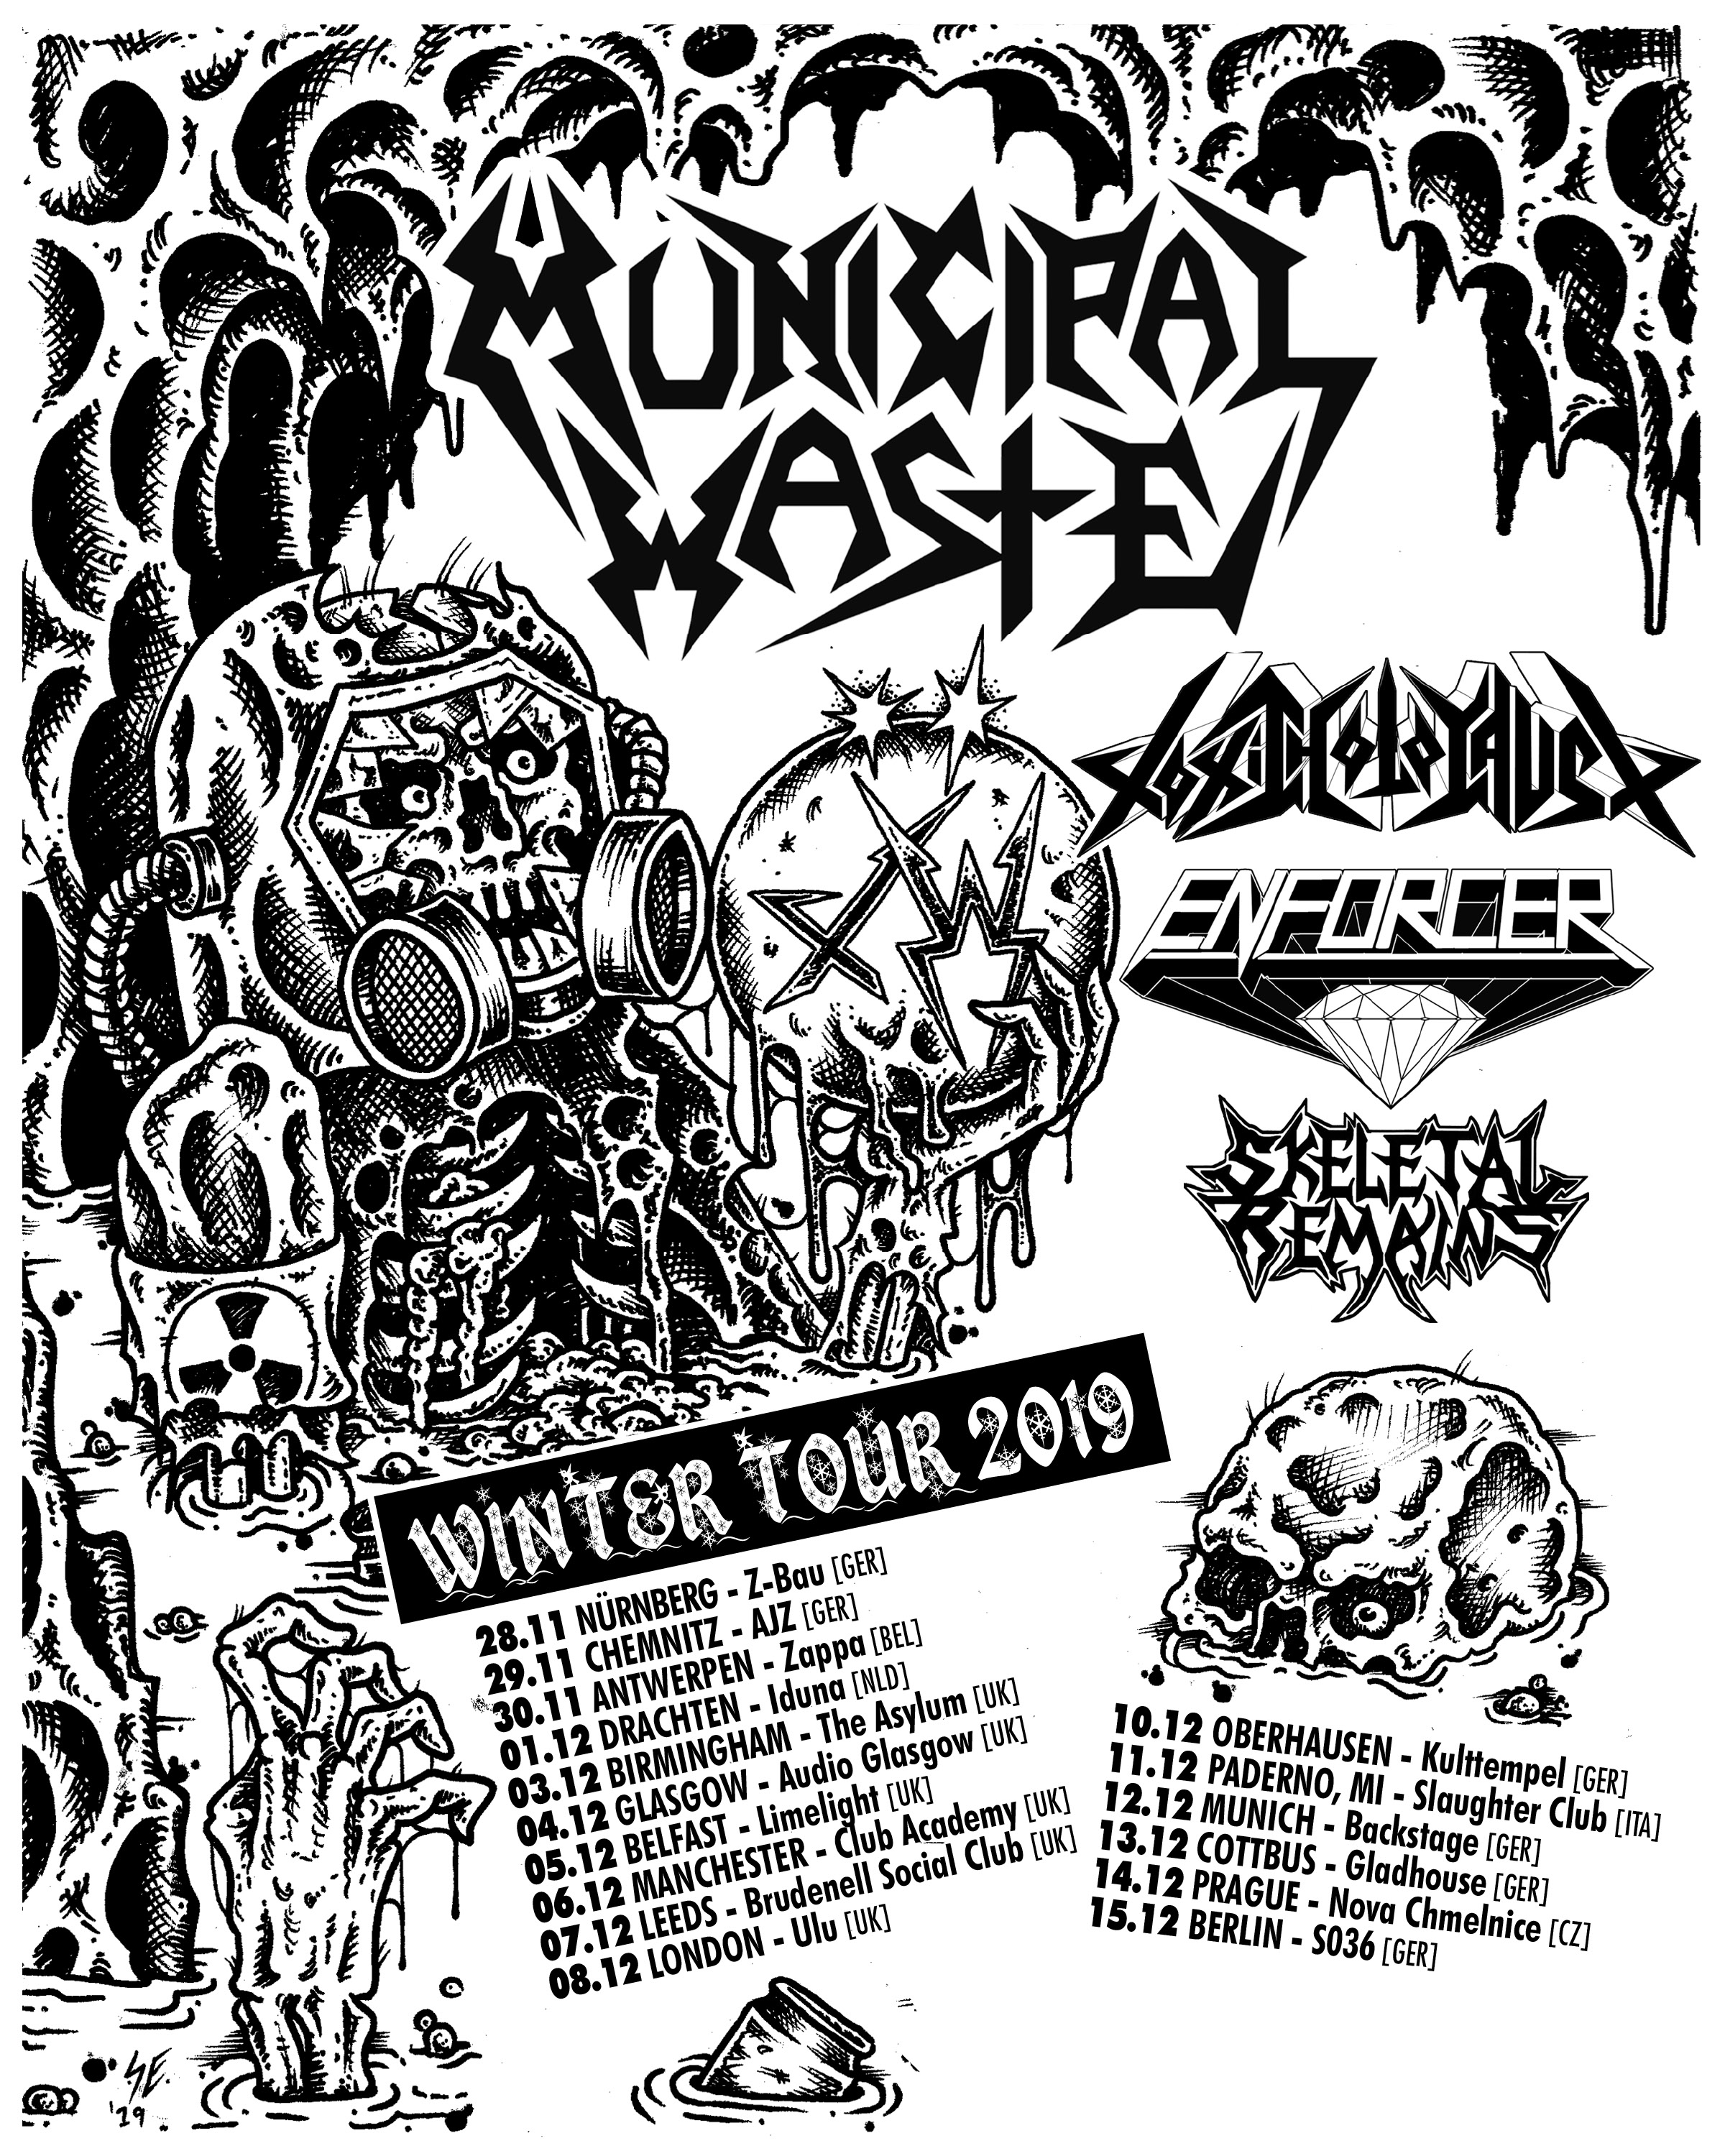 municipal waste 2019 tour poster.jpg